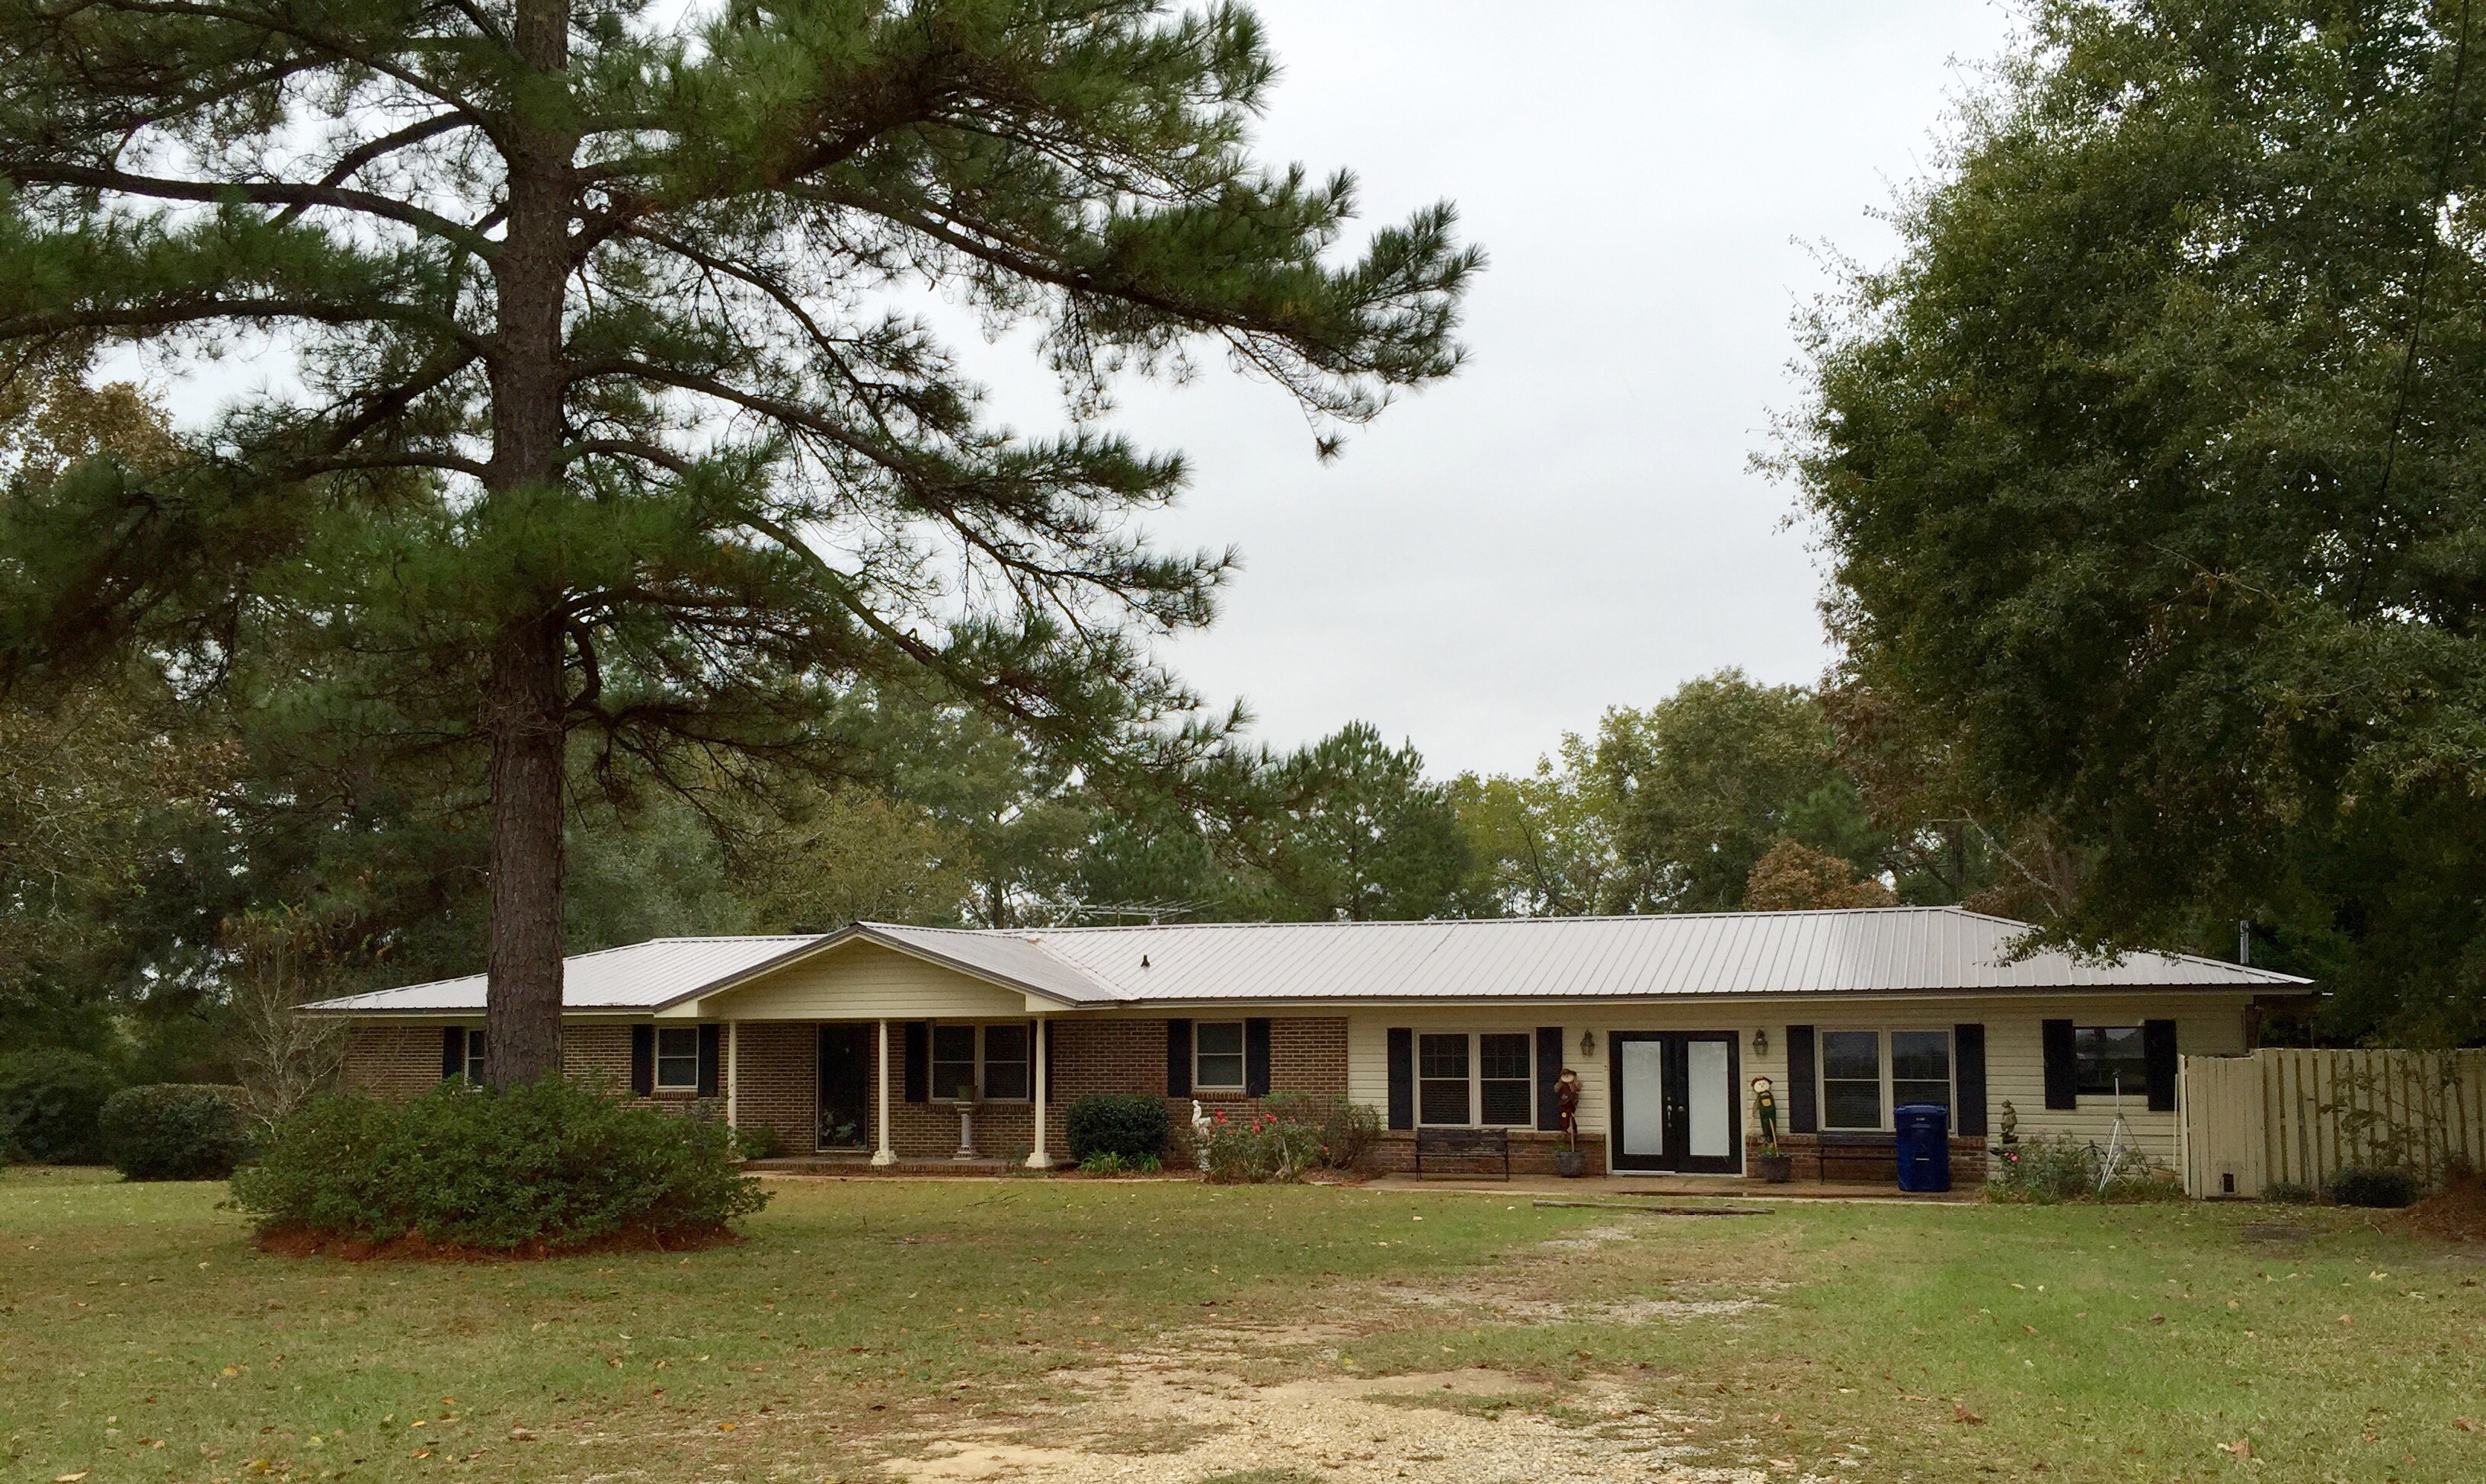 403 Jessica Road, Slocomb, Alabama 36375